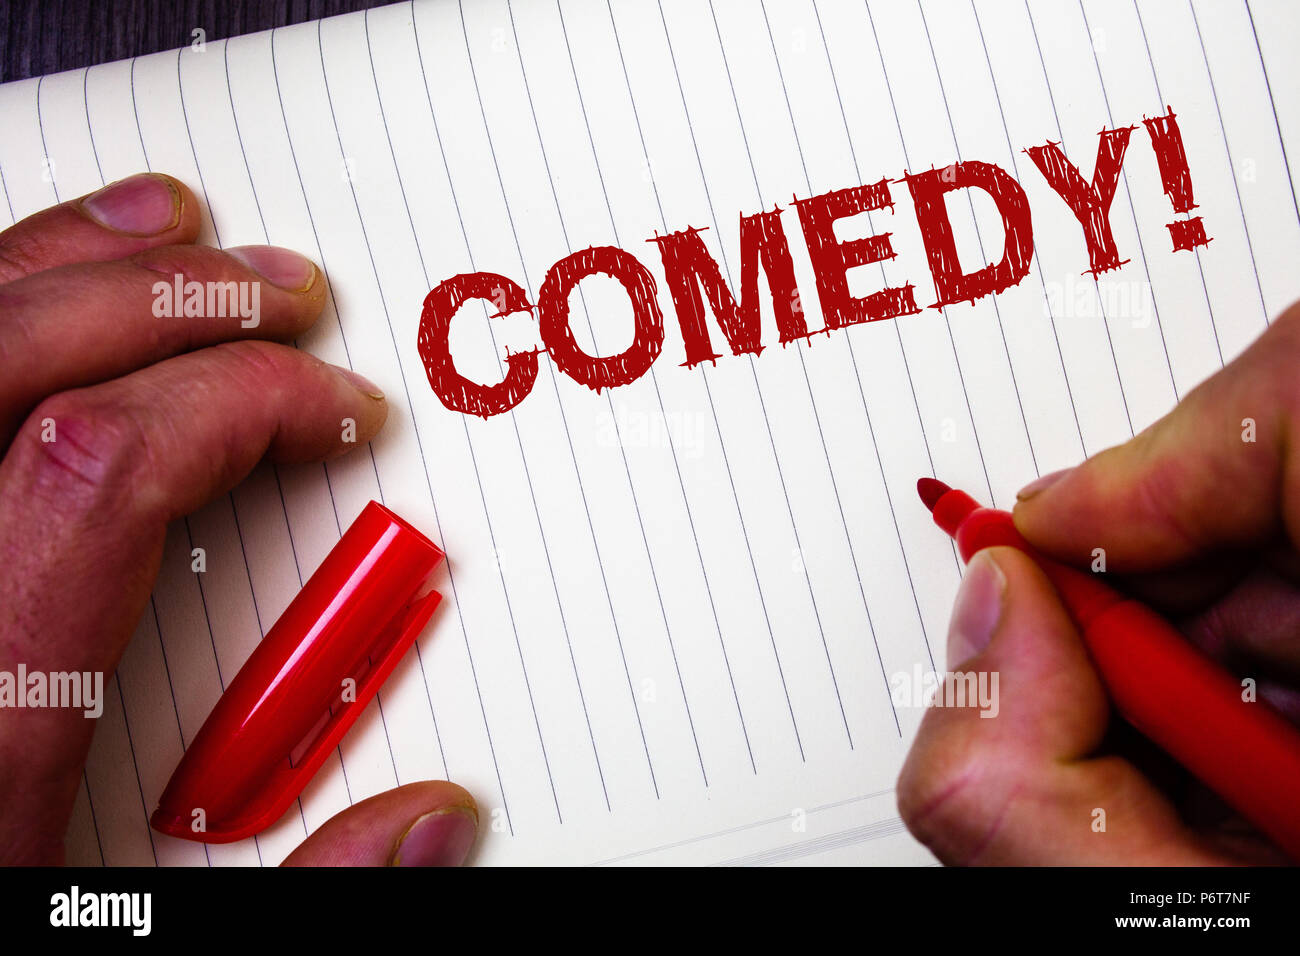 Conceptual hand writing showing Comedy Call. Business photo showcasing Fun Humor Satire Sitcom Hilarity Joking Entertainment Laughing Man hold holding - Stock Image